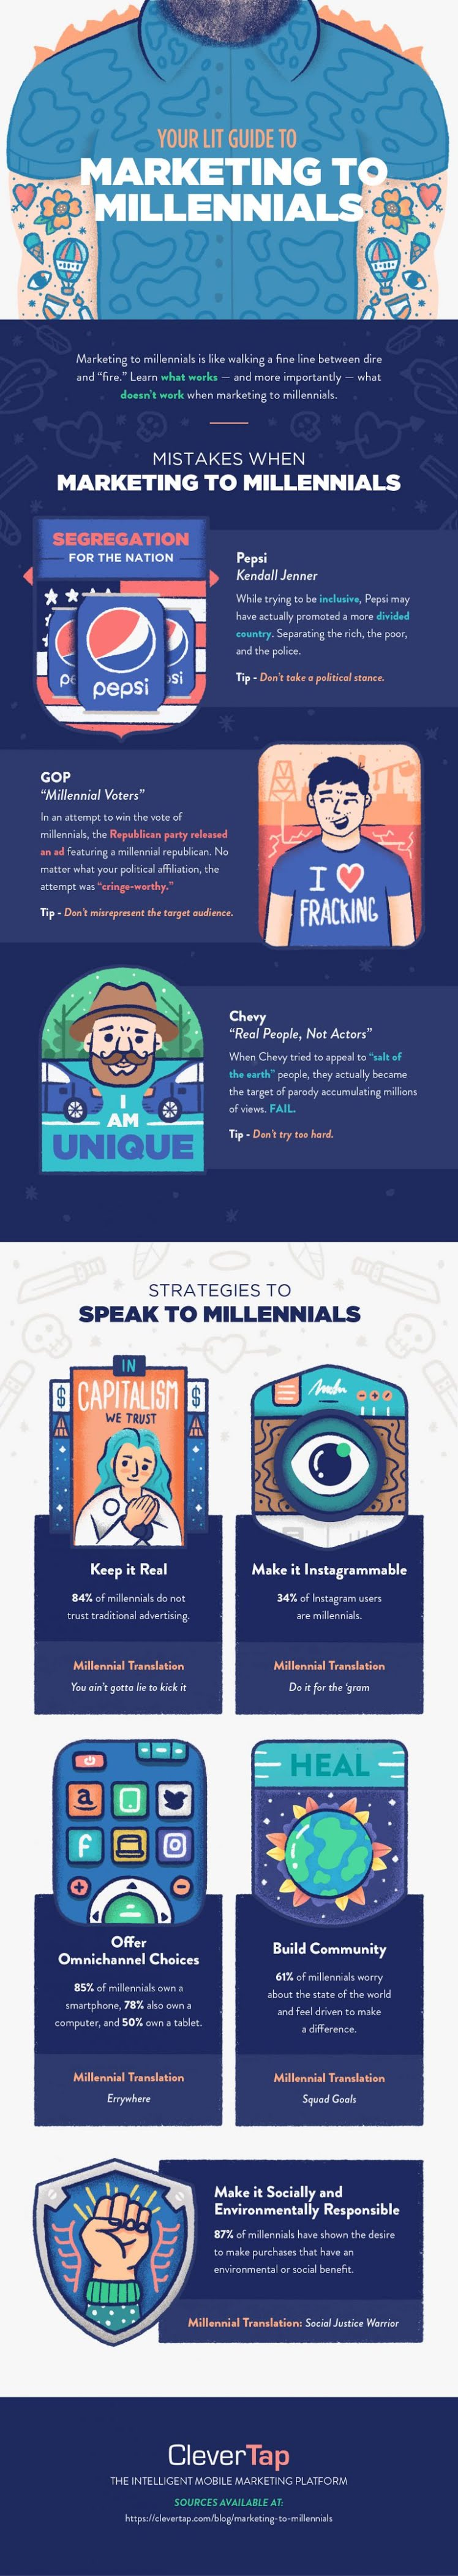 The Lit Guide To Marketing To Millennials #infographic